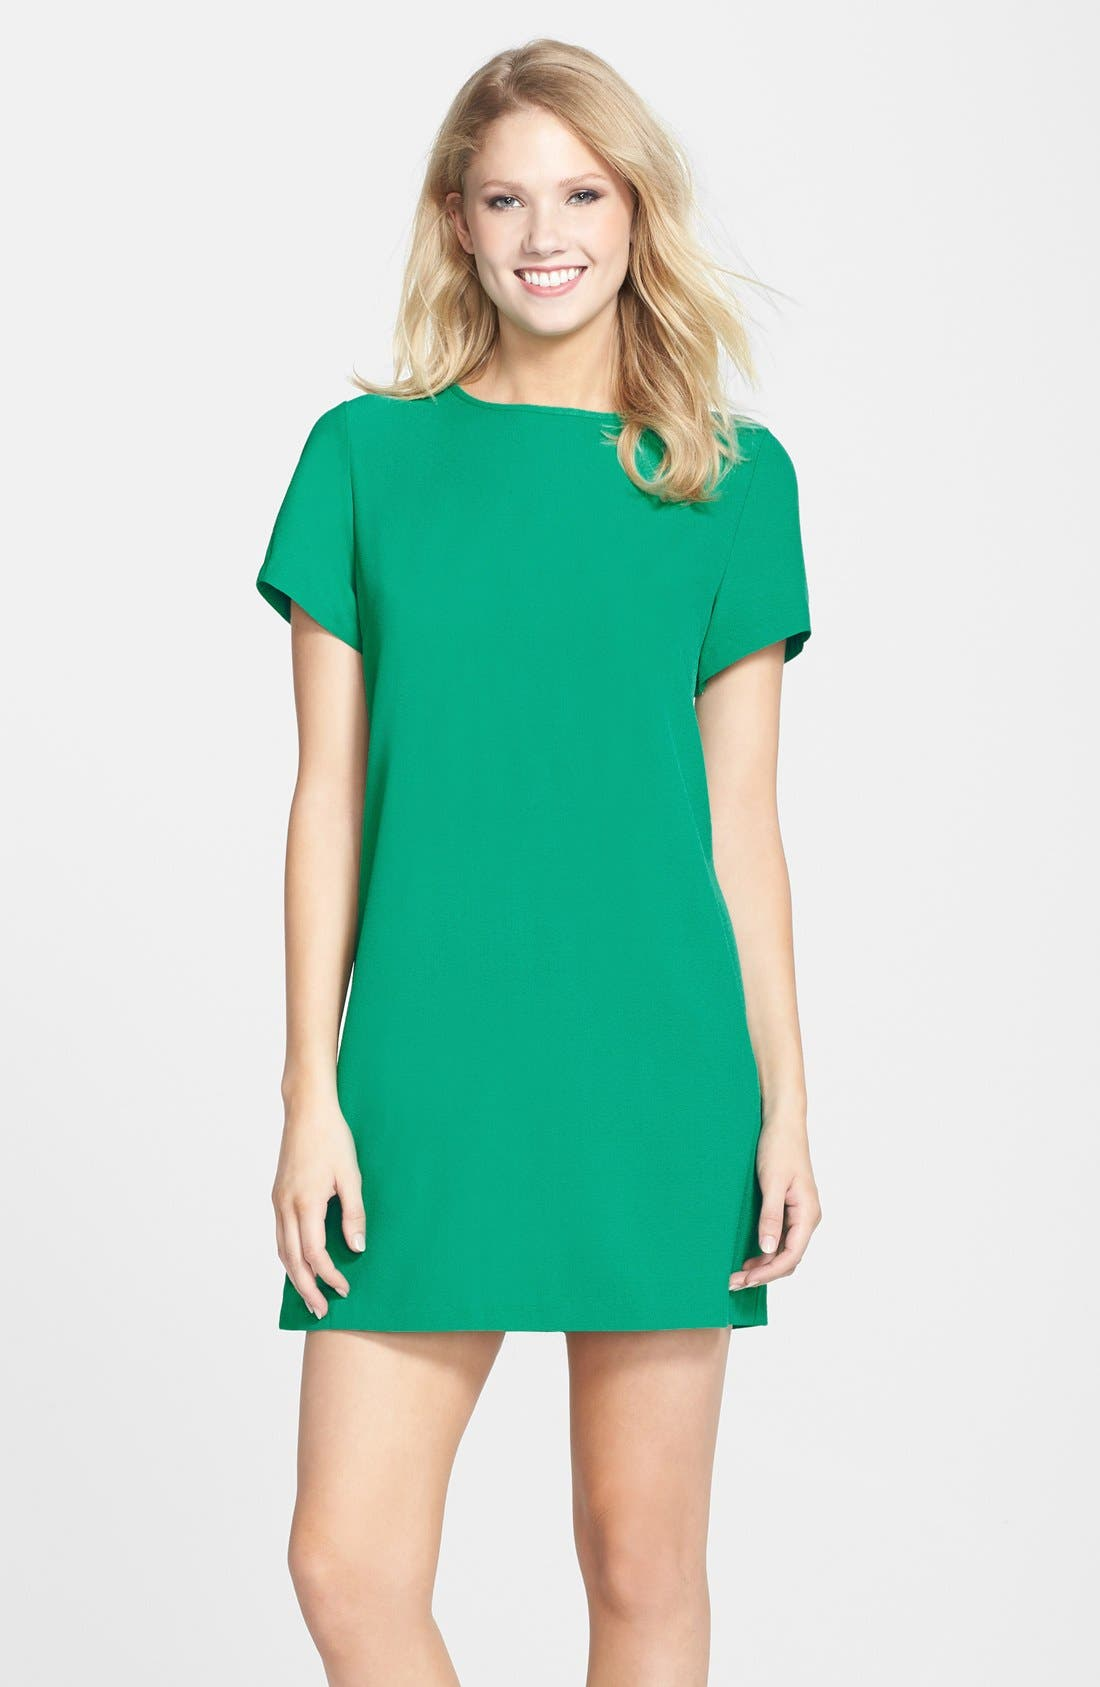 Felicity Amp Coco Devery Crepe Shift Dress Nordstrom